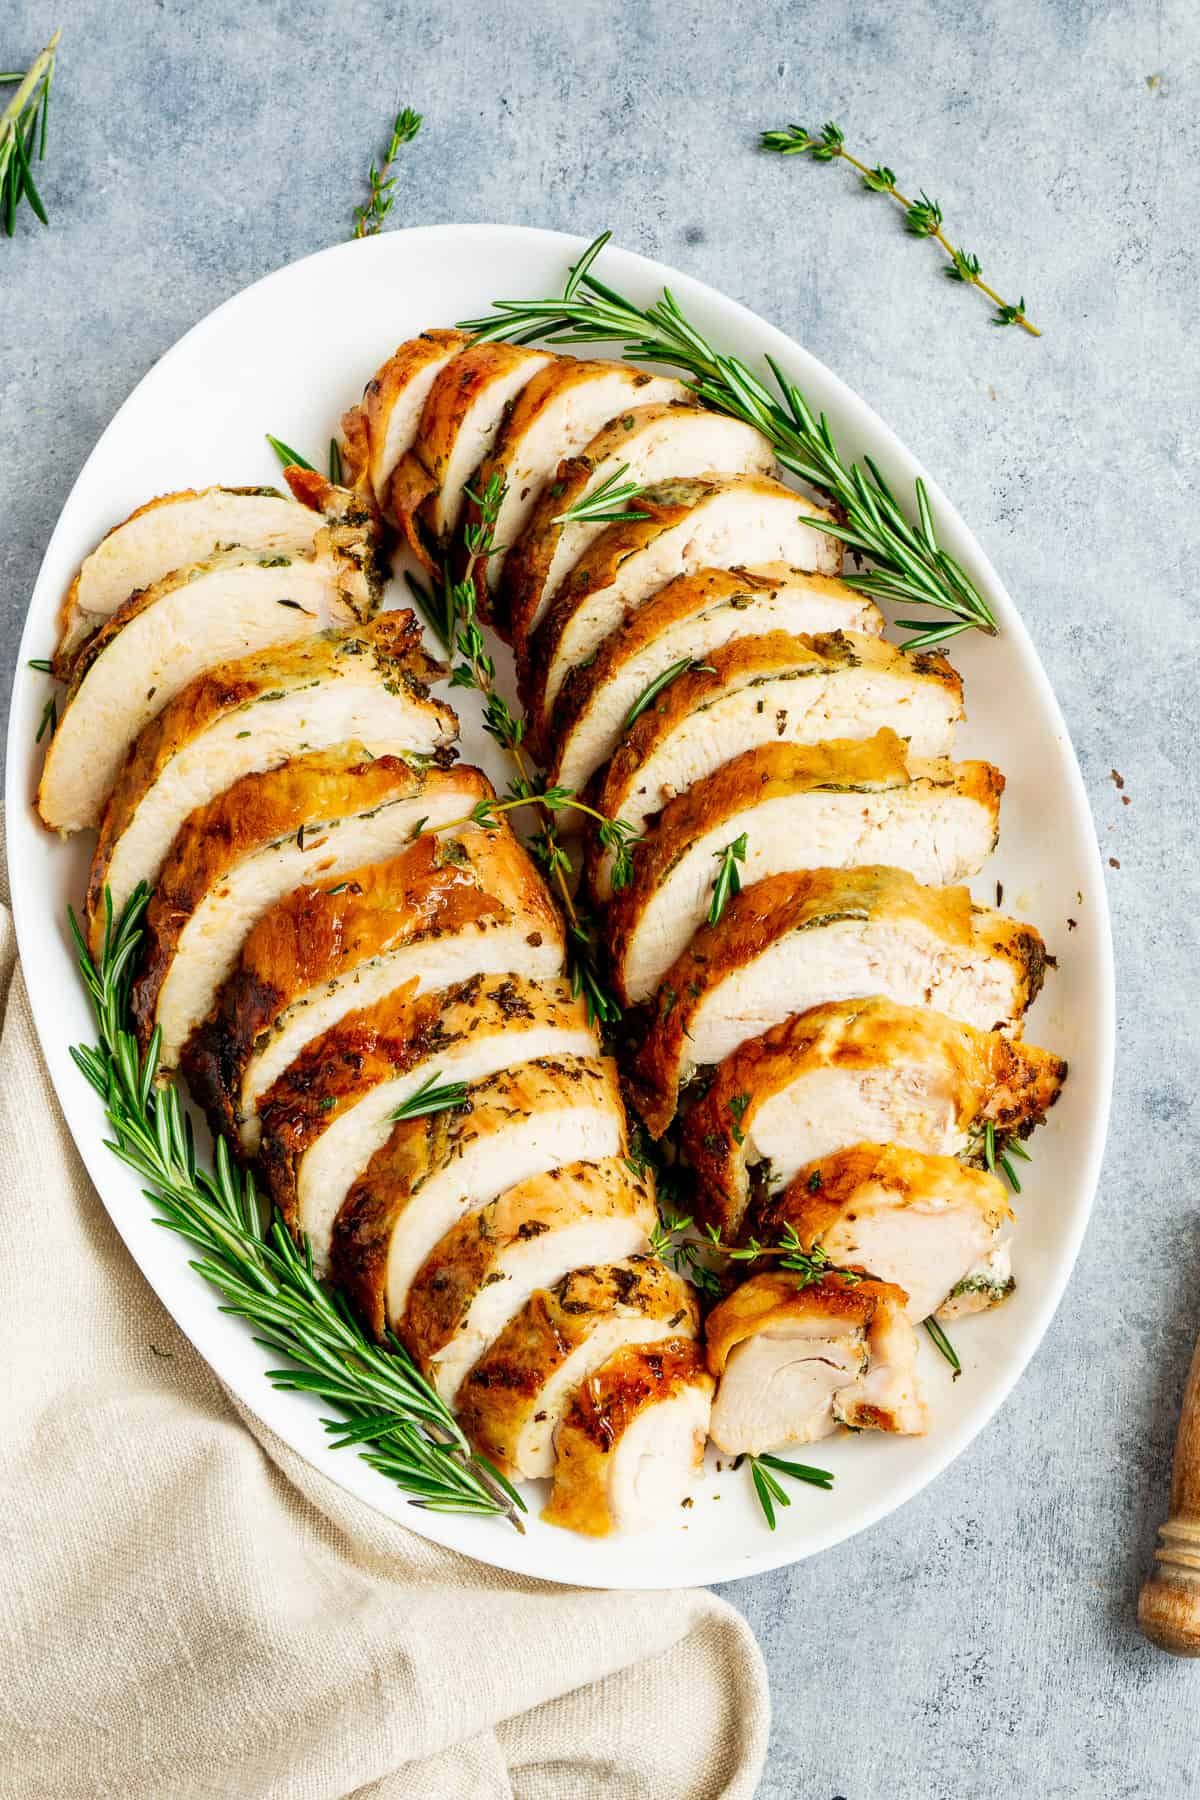 Air fryer roasted turkey breast sliced on a plater with fresh thyme and rosemary.